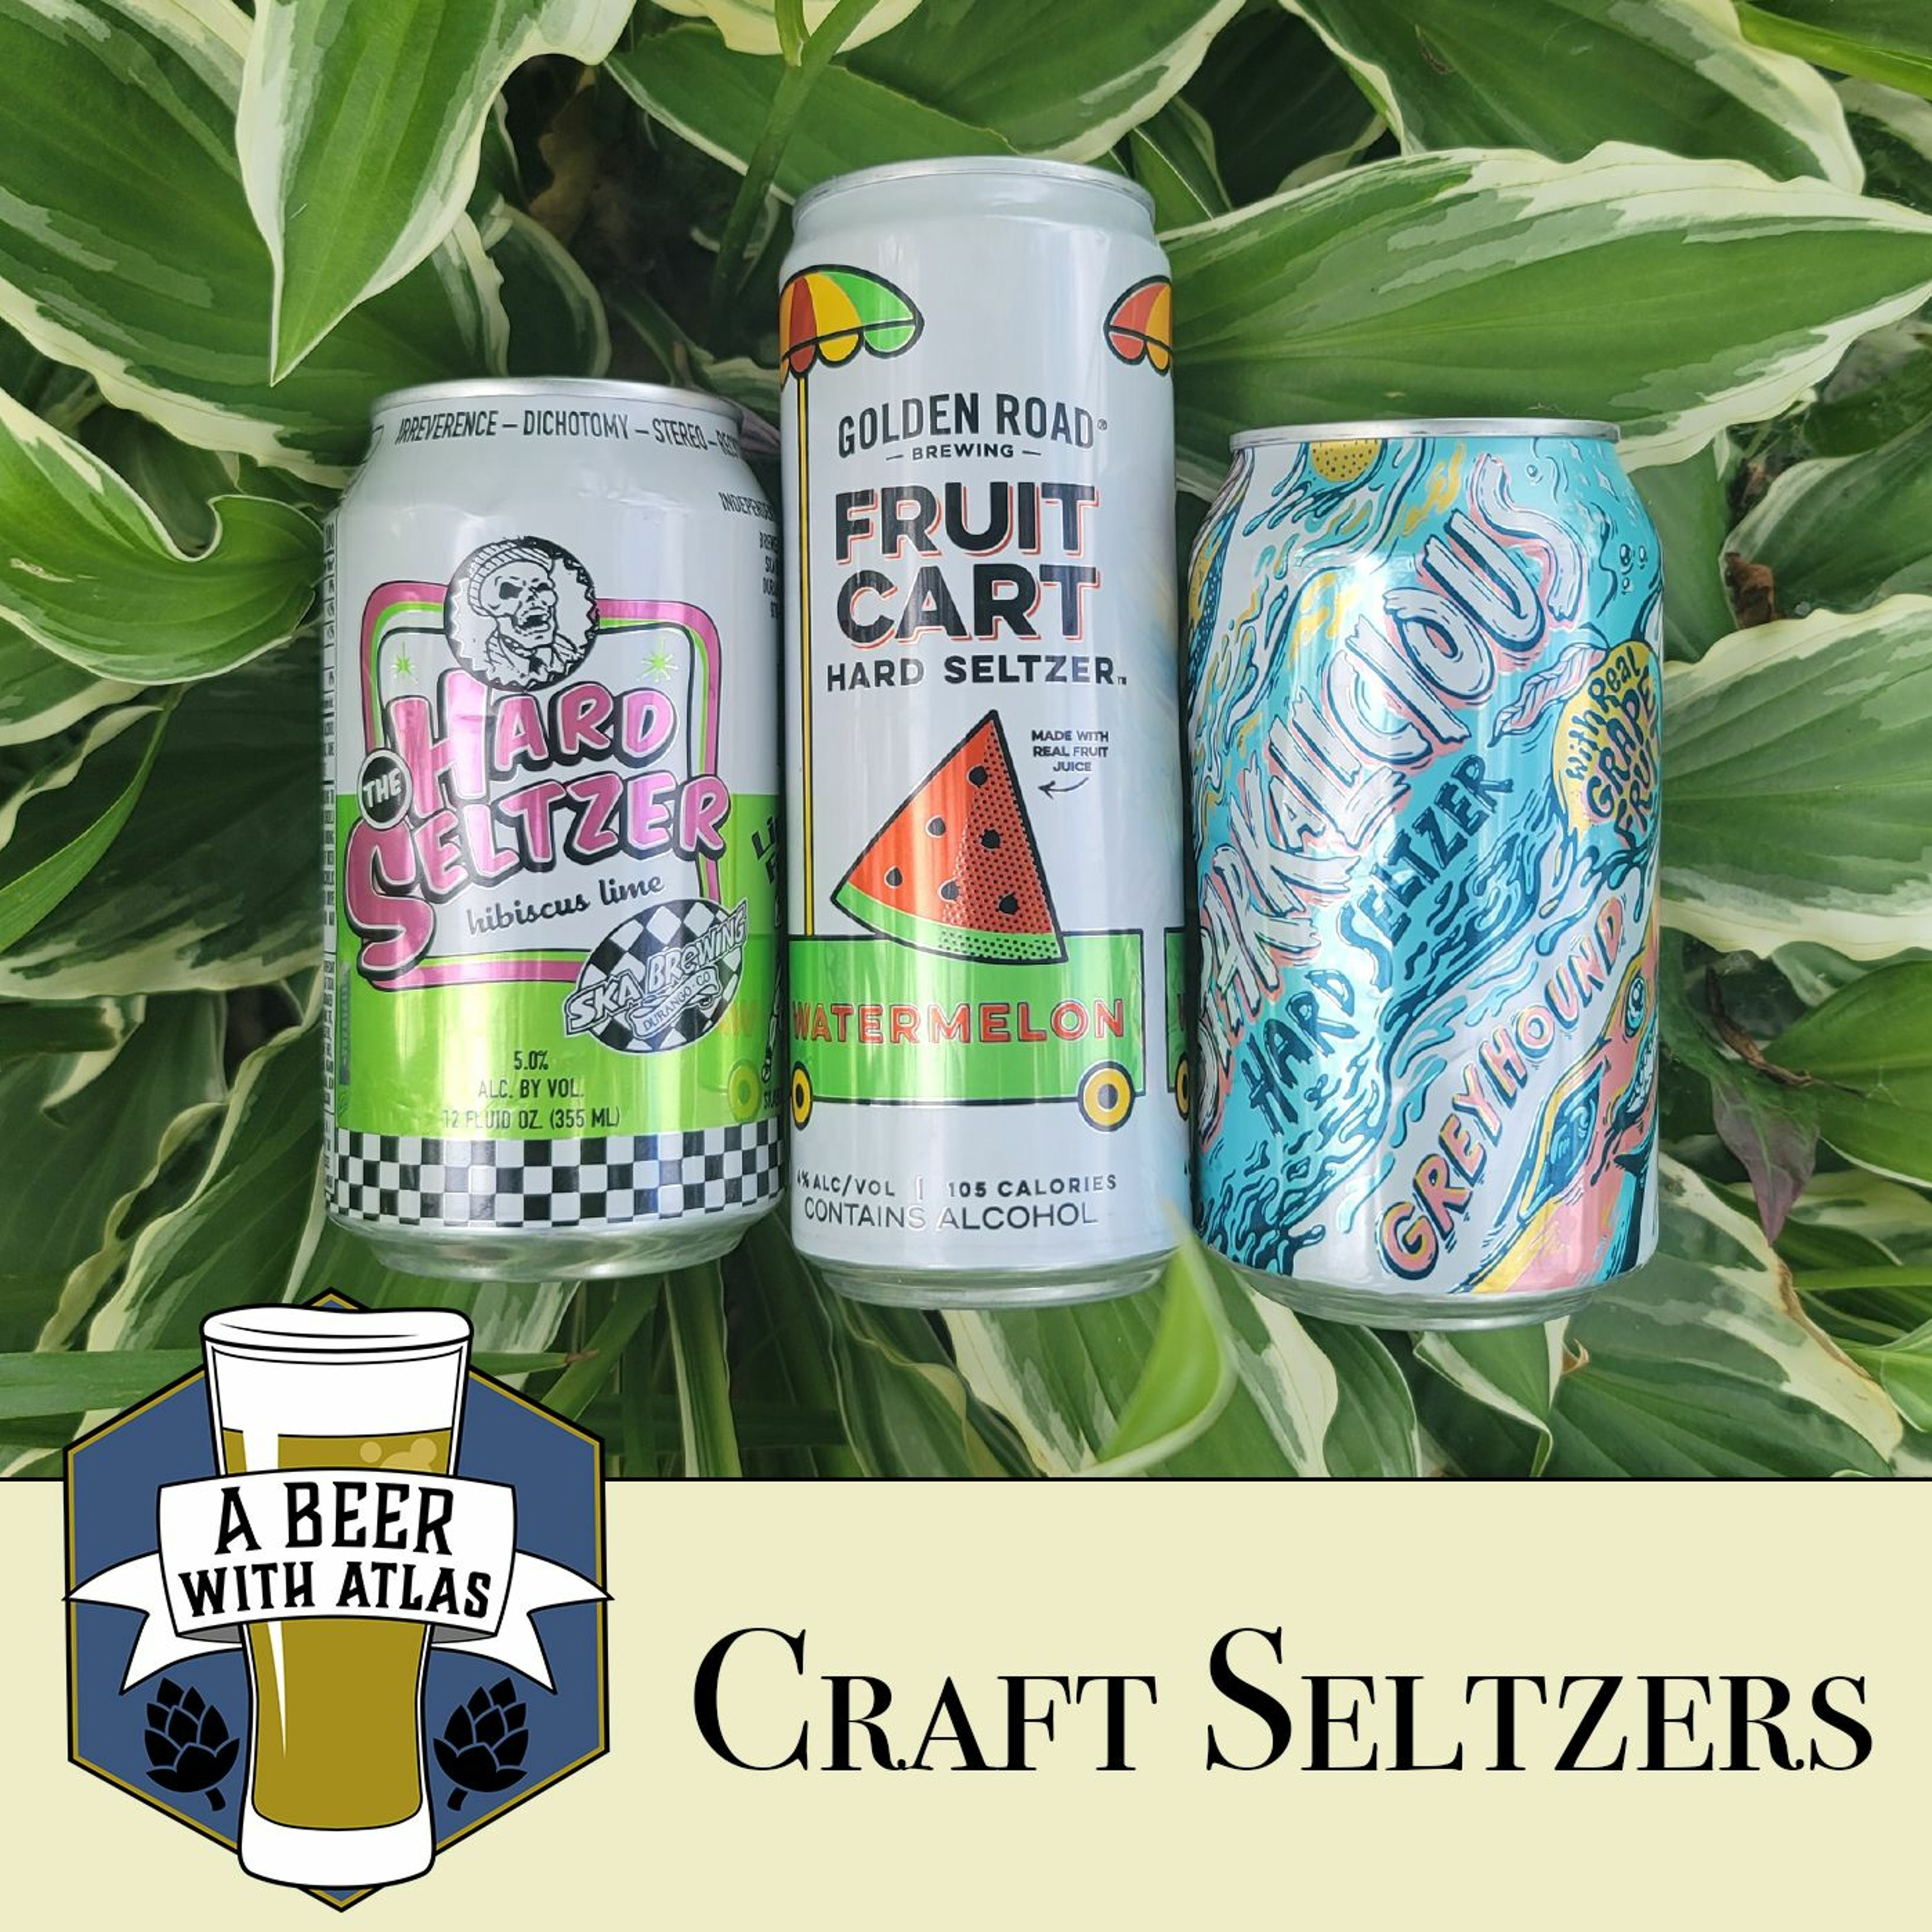 We drink craft seltzers   How do they compare to the mainstream ones? - A Beer with Atlas 150